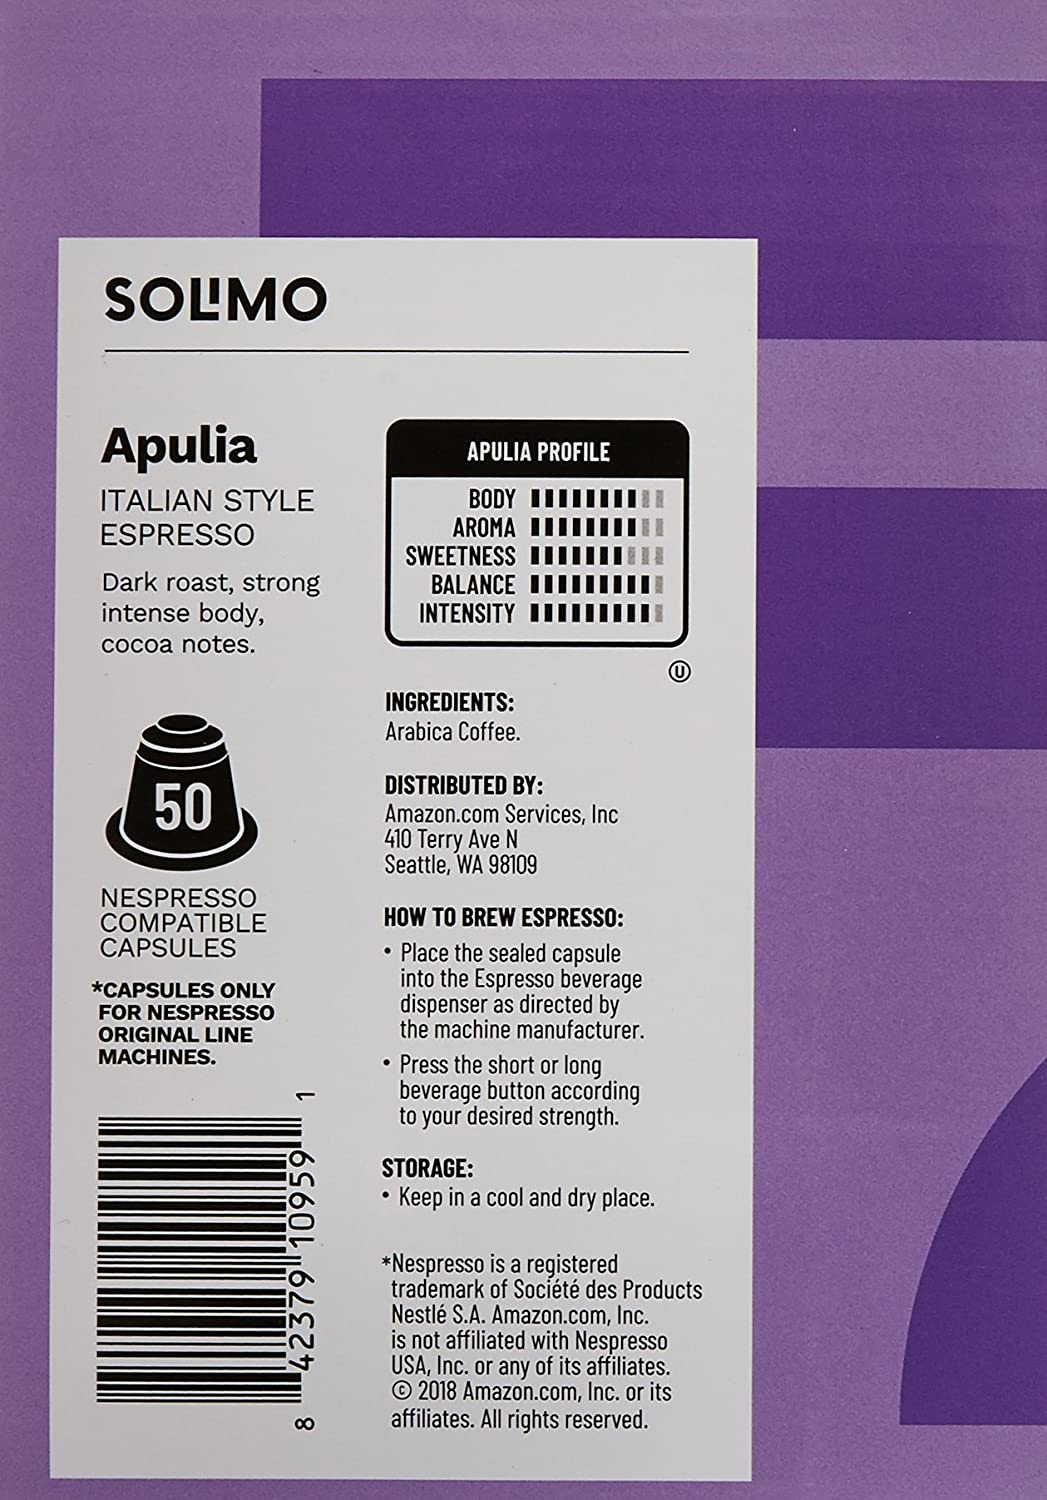 Solimo NA Pods: Amazon.com: Grocery & Gourmet Food